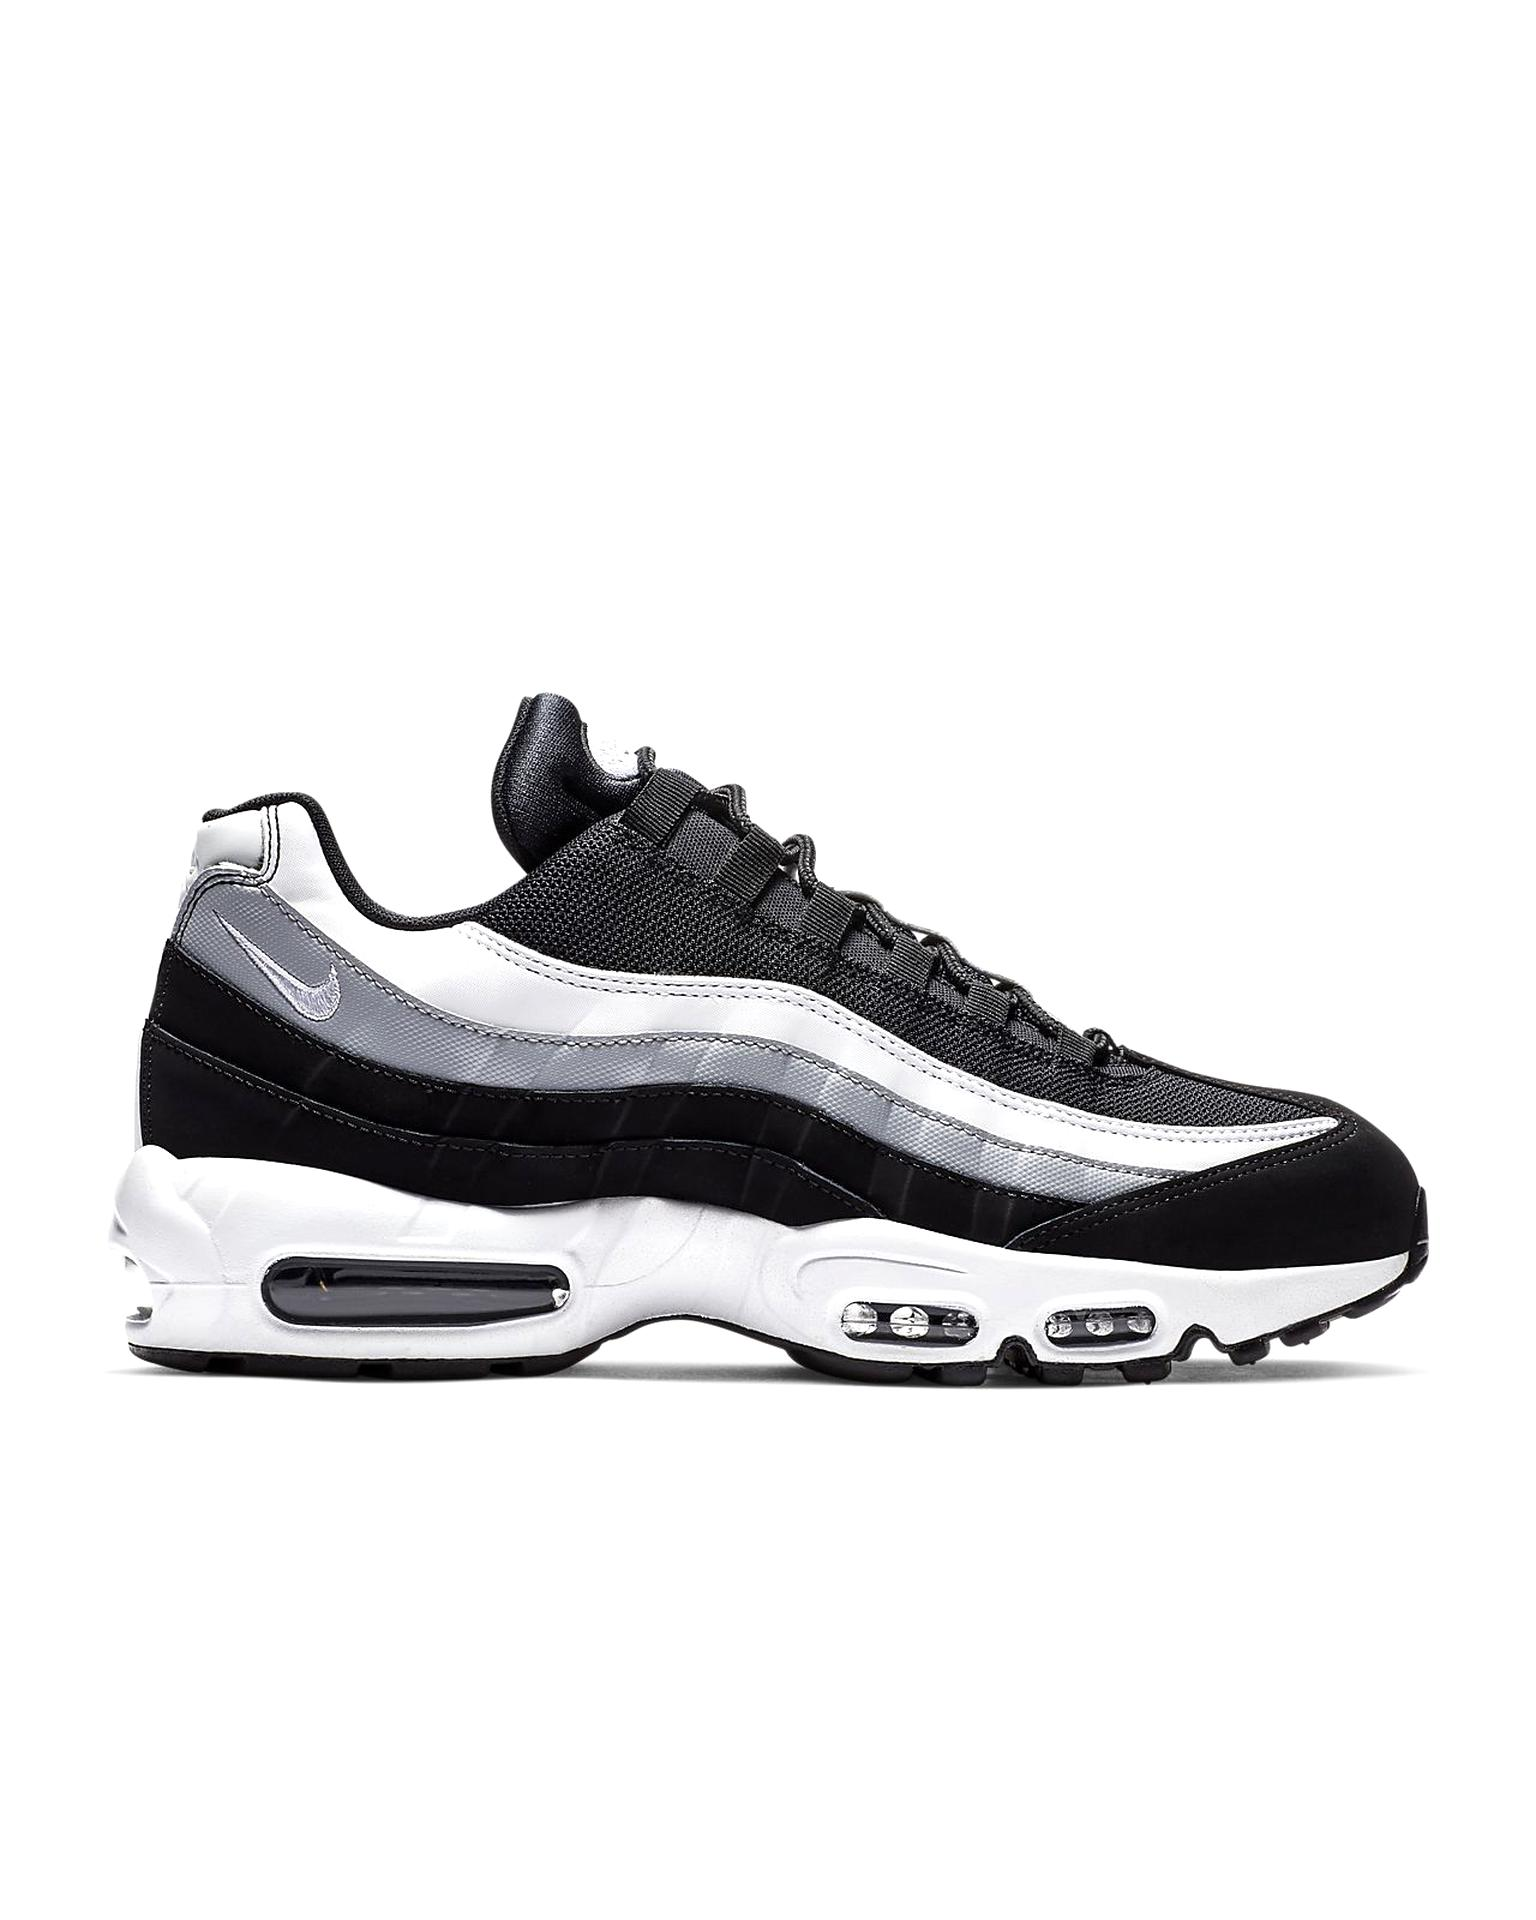 Air Max 95 d'occasion | Plus que 2 à 65%